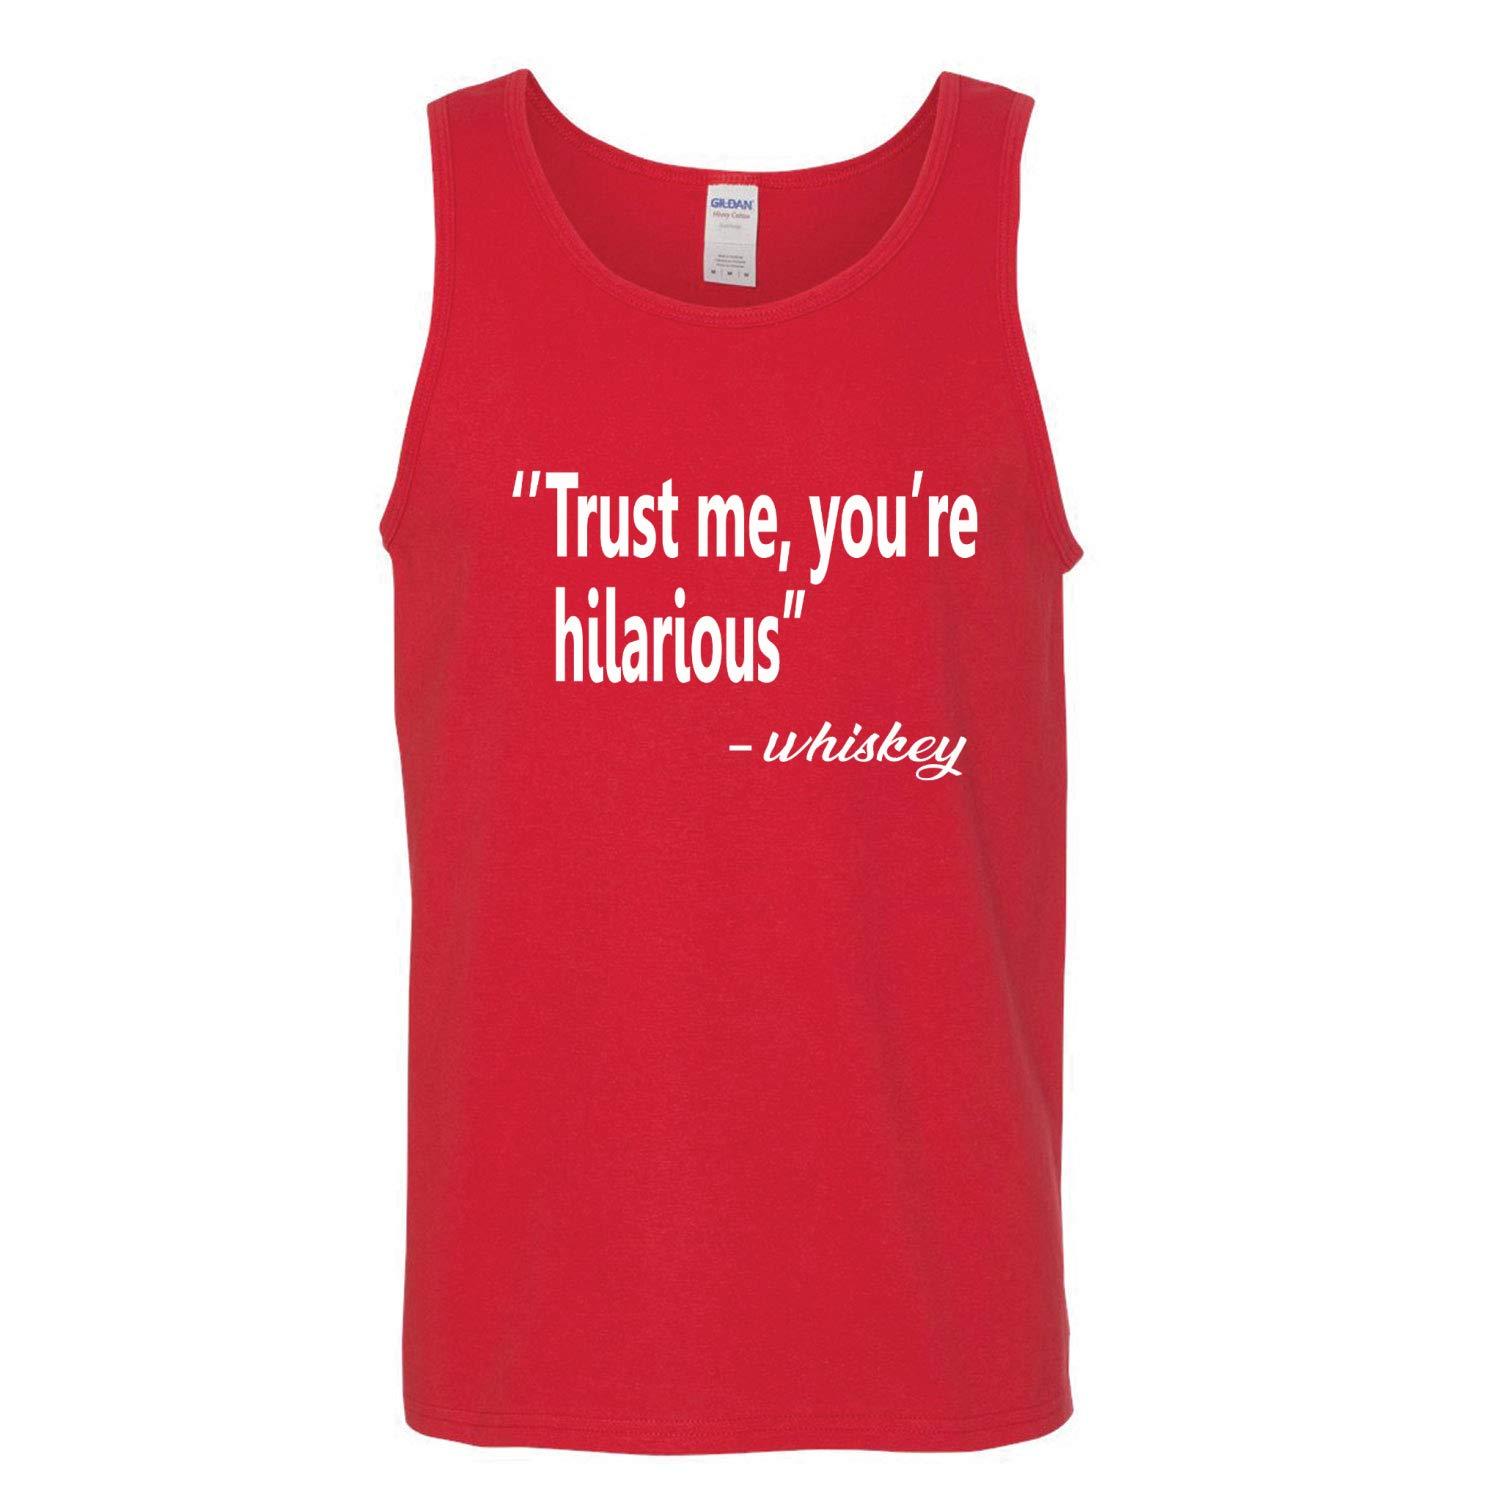 Whiskey Drinking Mens Graphic Tank Top Youre Hilarious Donkey Threads Trust Me